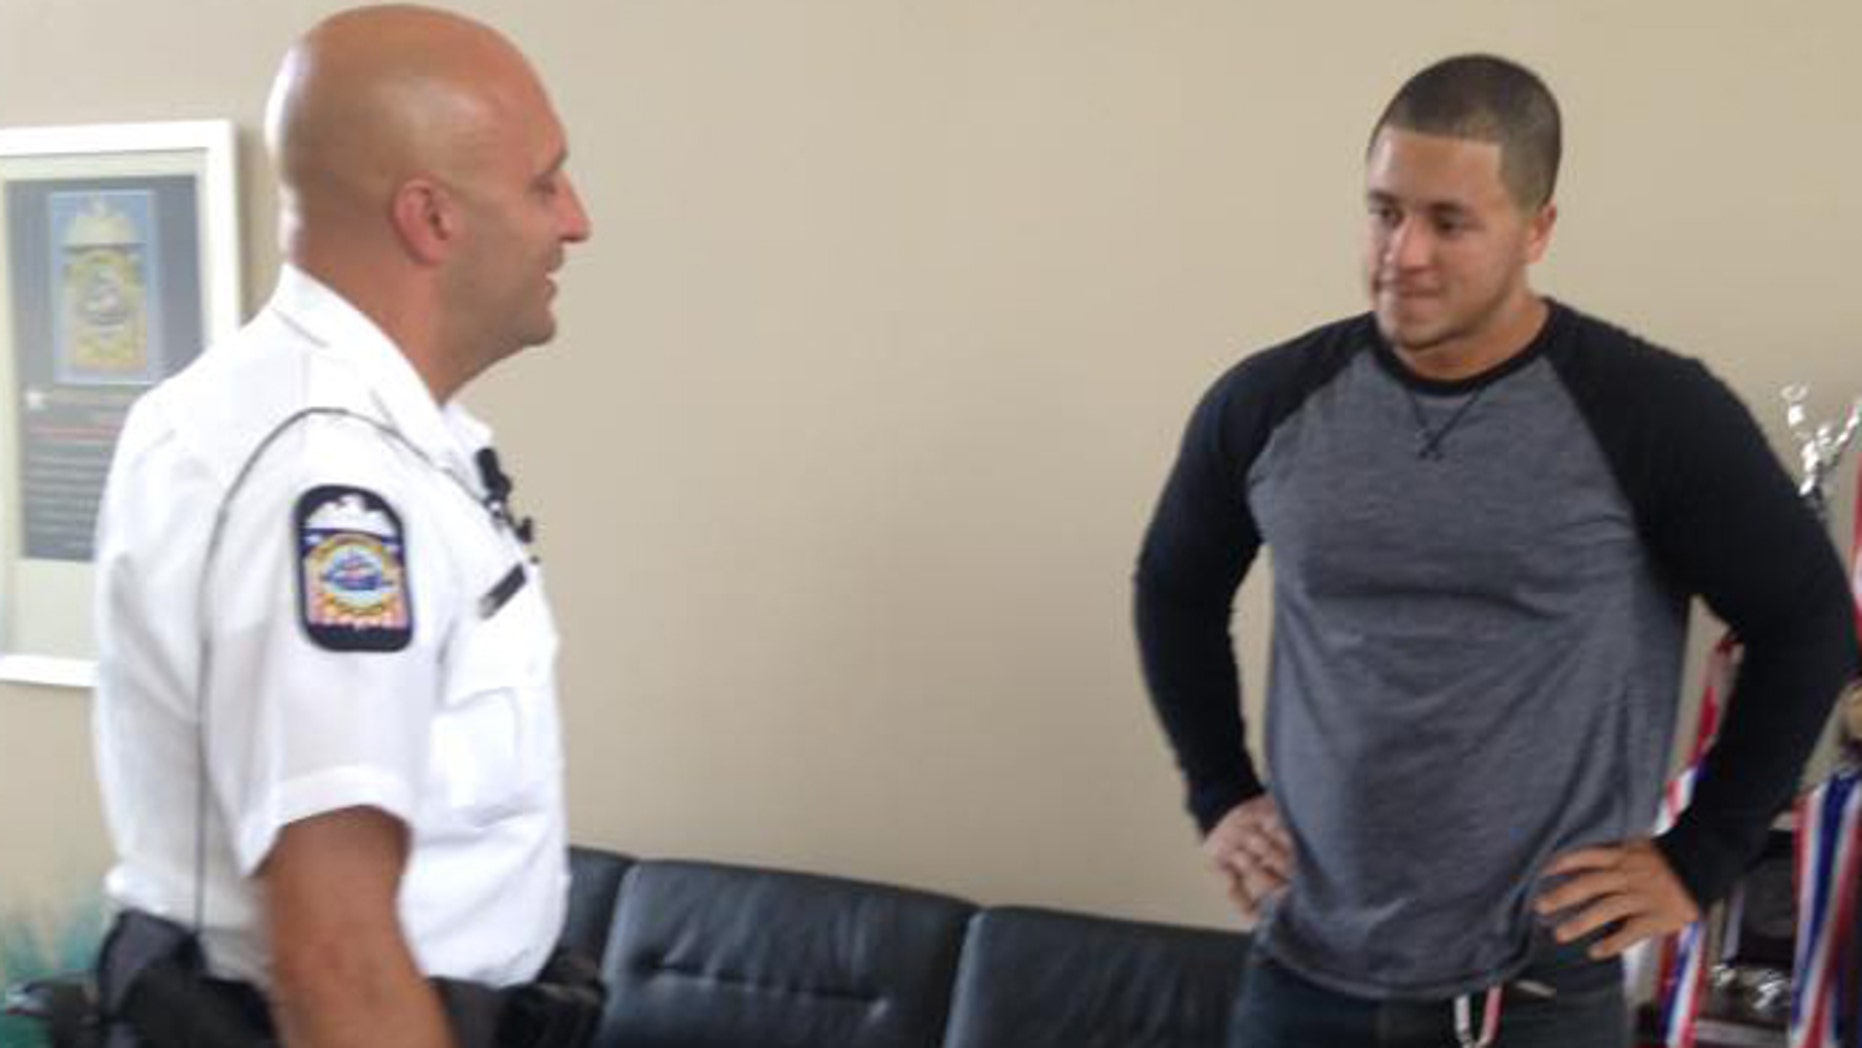 Officer James Poole and Christopher Jones. (Columbus Police Department)